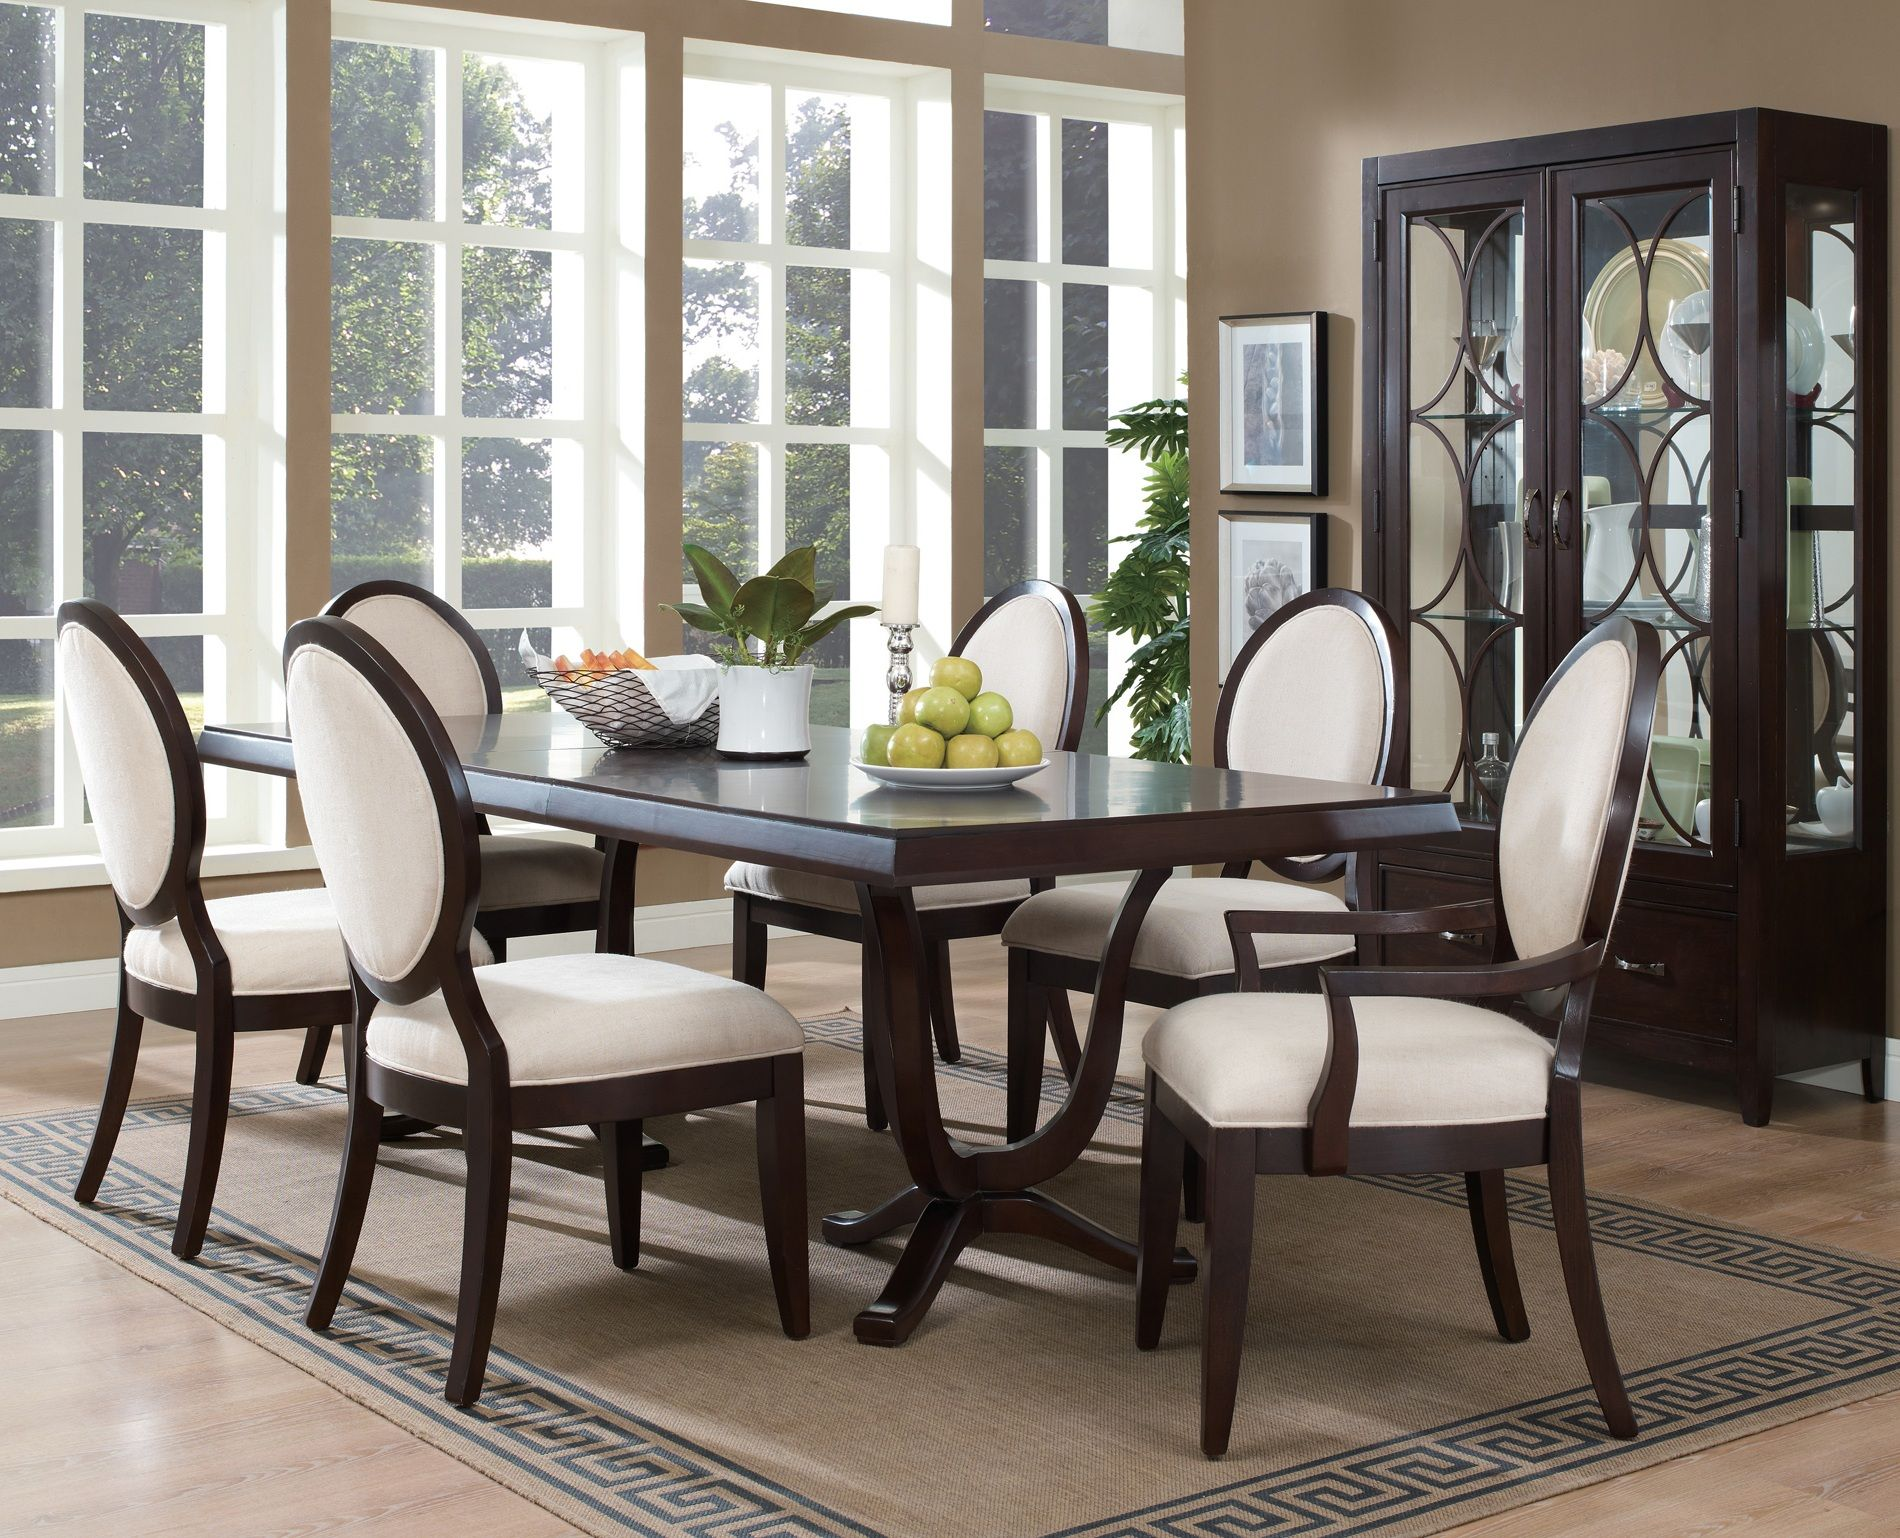 décor for formal dining room designs | luxury dining room, wooden